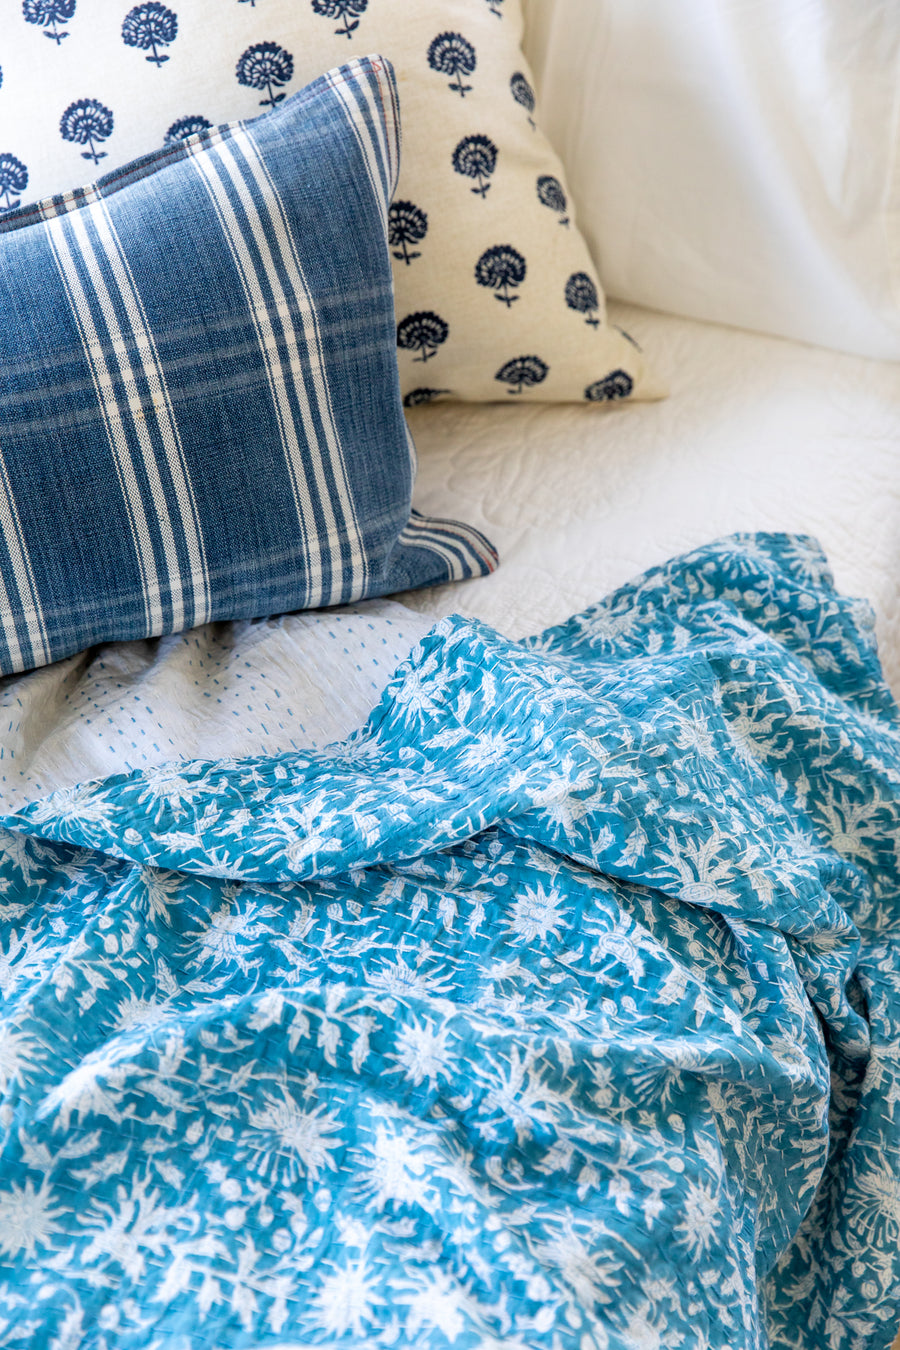 Blue Floral Kantha Quilted Coverlet